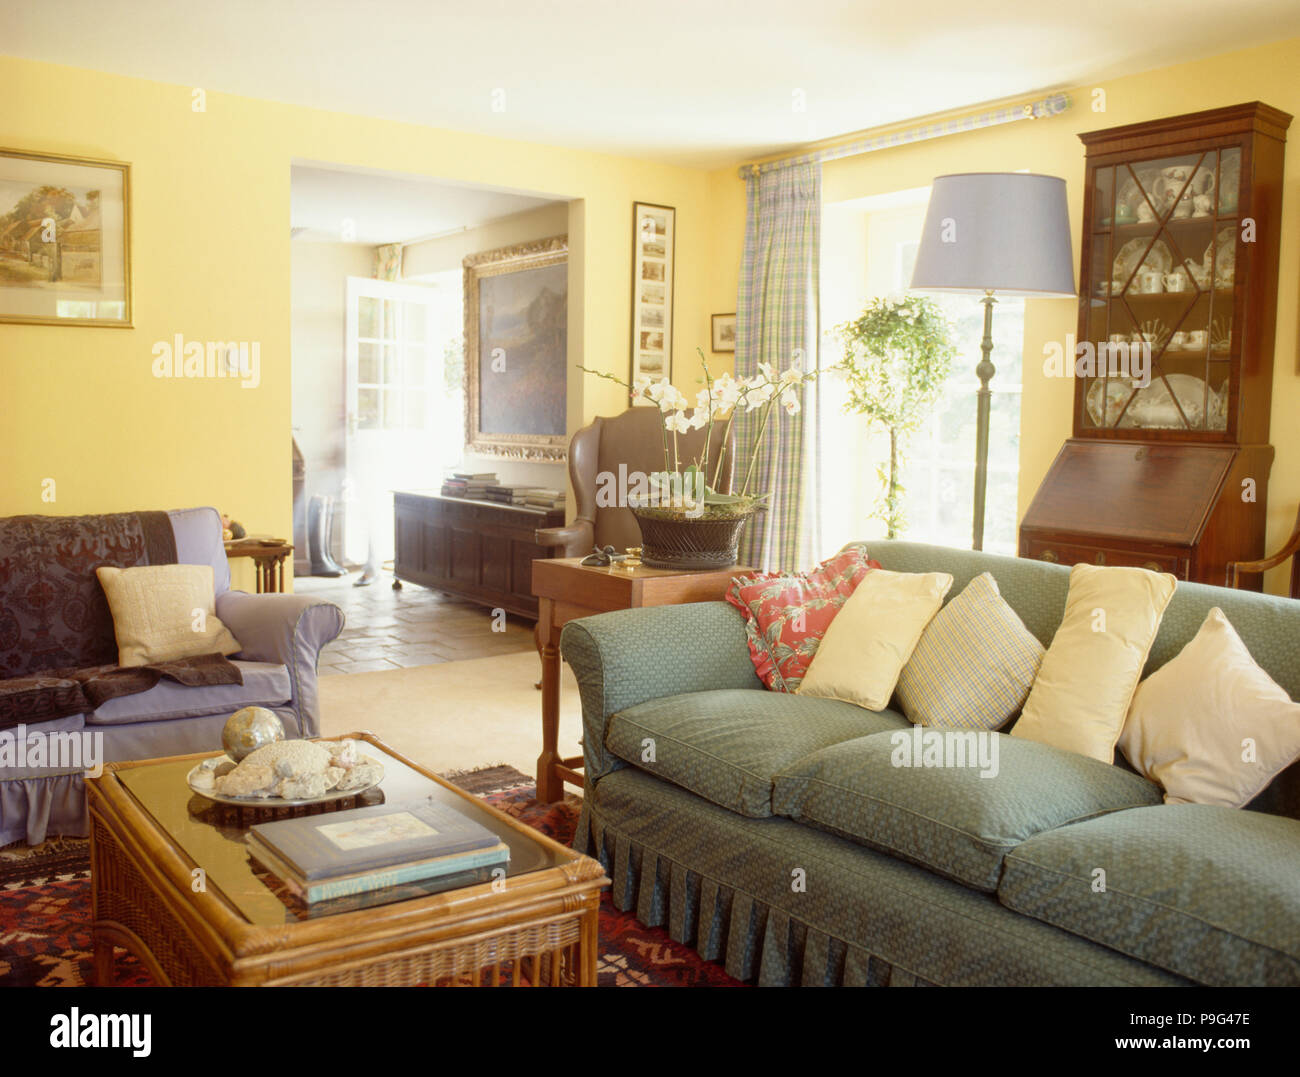 green cushions living room victorian style pastel yellow on pale sofa in country with open doorway to hall